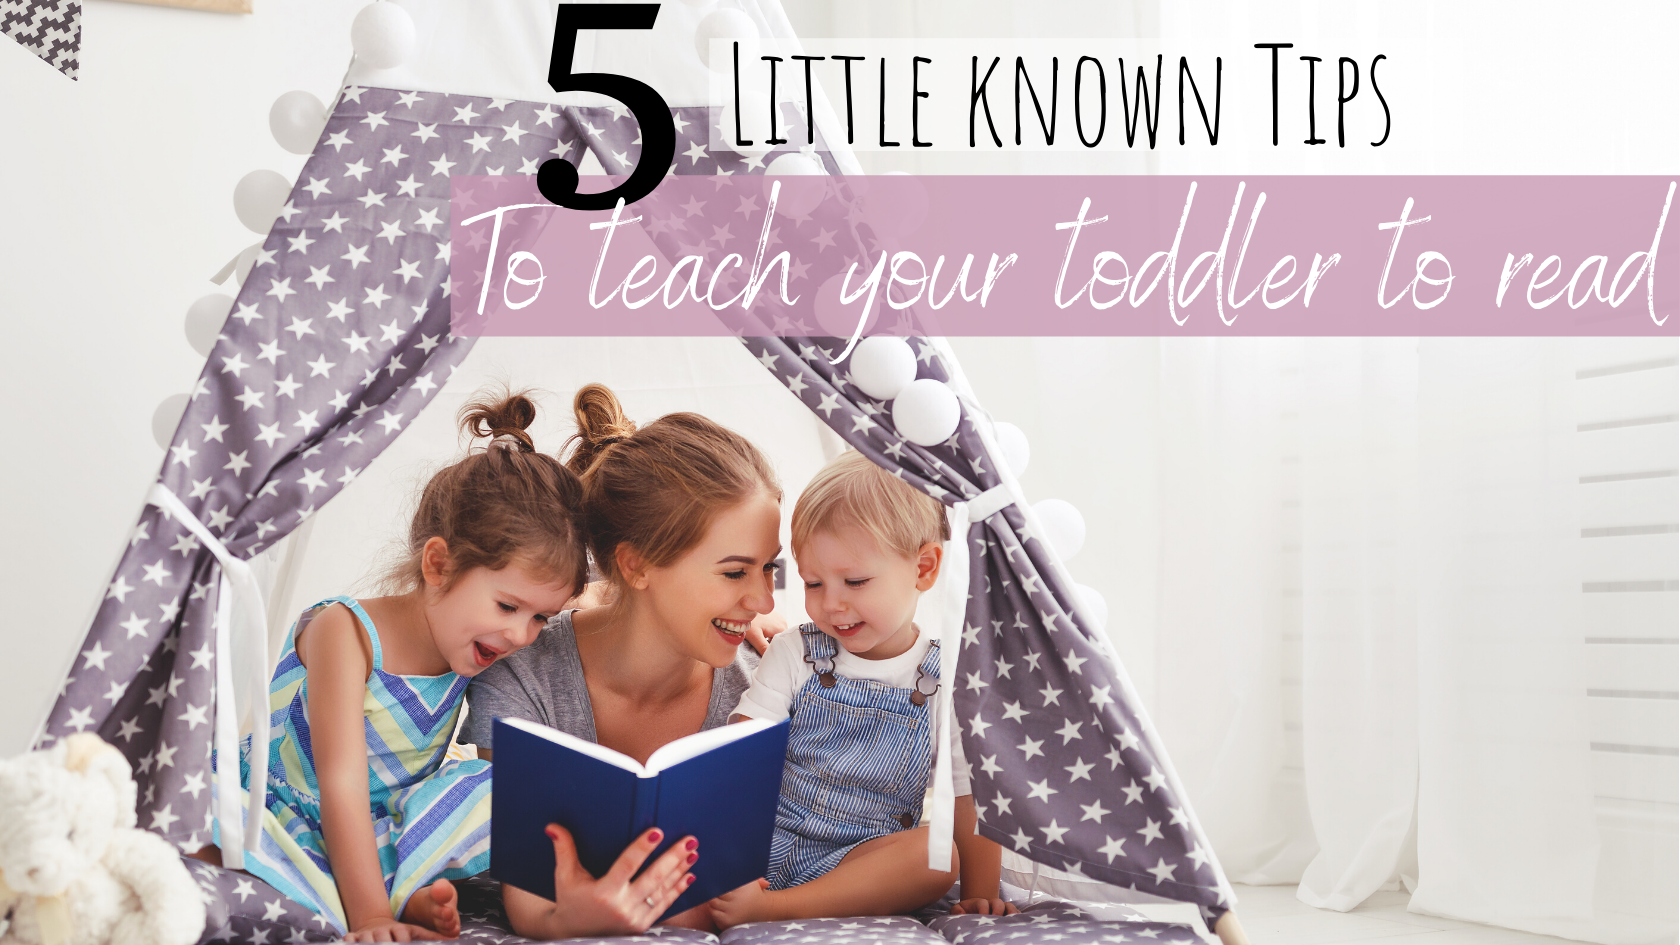 5 Little Known Tips to Teach Your Toddler to Read